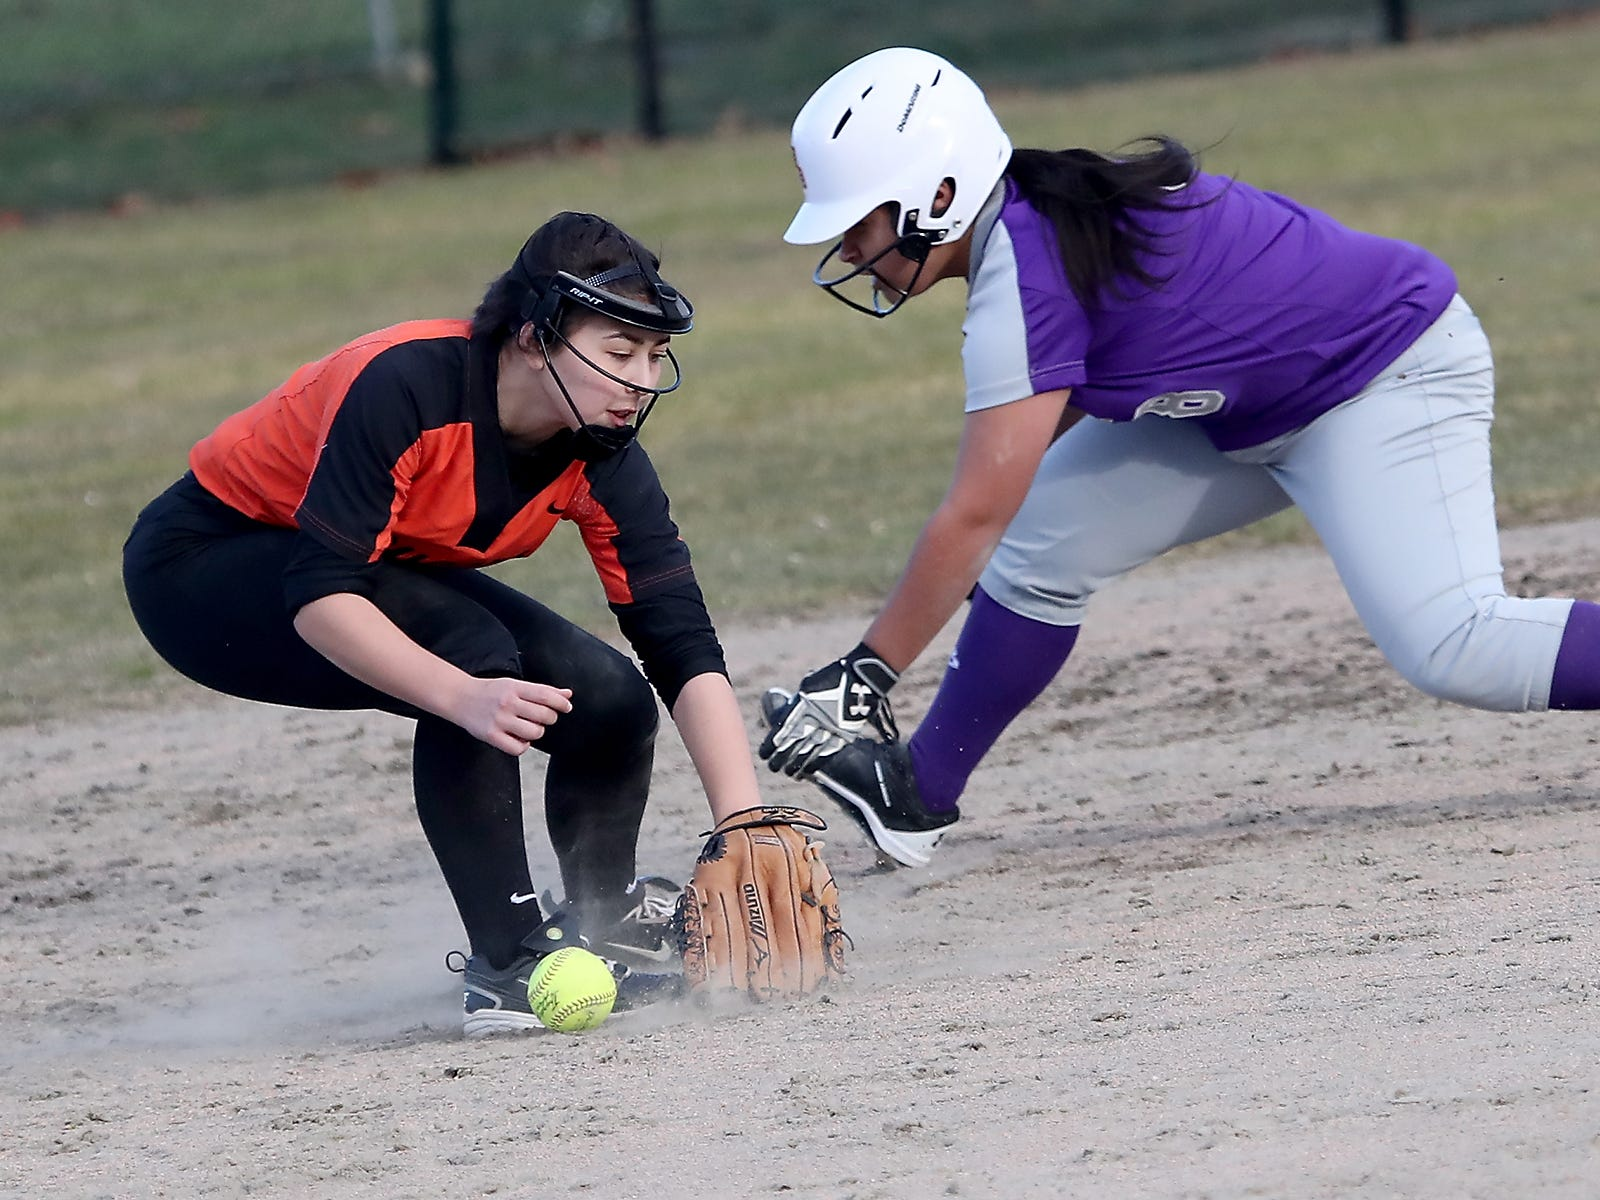 North Kitsap's Alicia Goetz gets ready to slide into second as Central Kitsap's Brooke Mimaki tries to find the ball in Poulsbo on Wednesday, March 13, 2019.